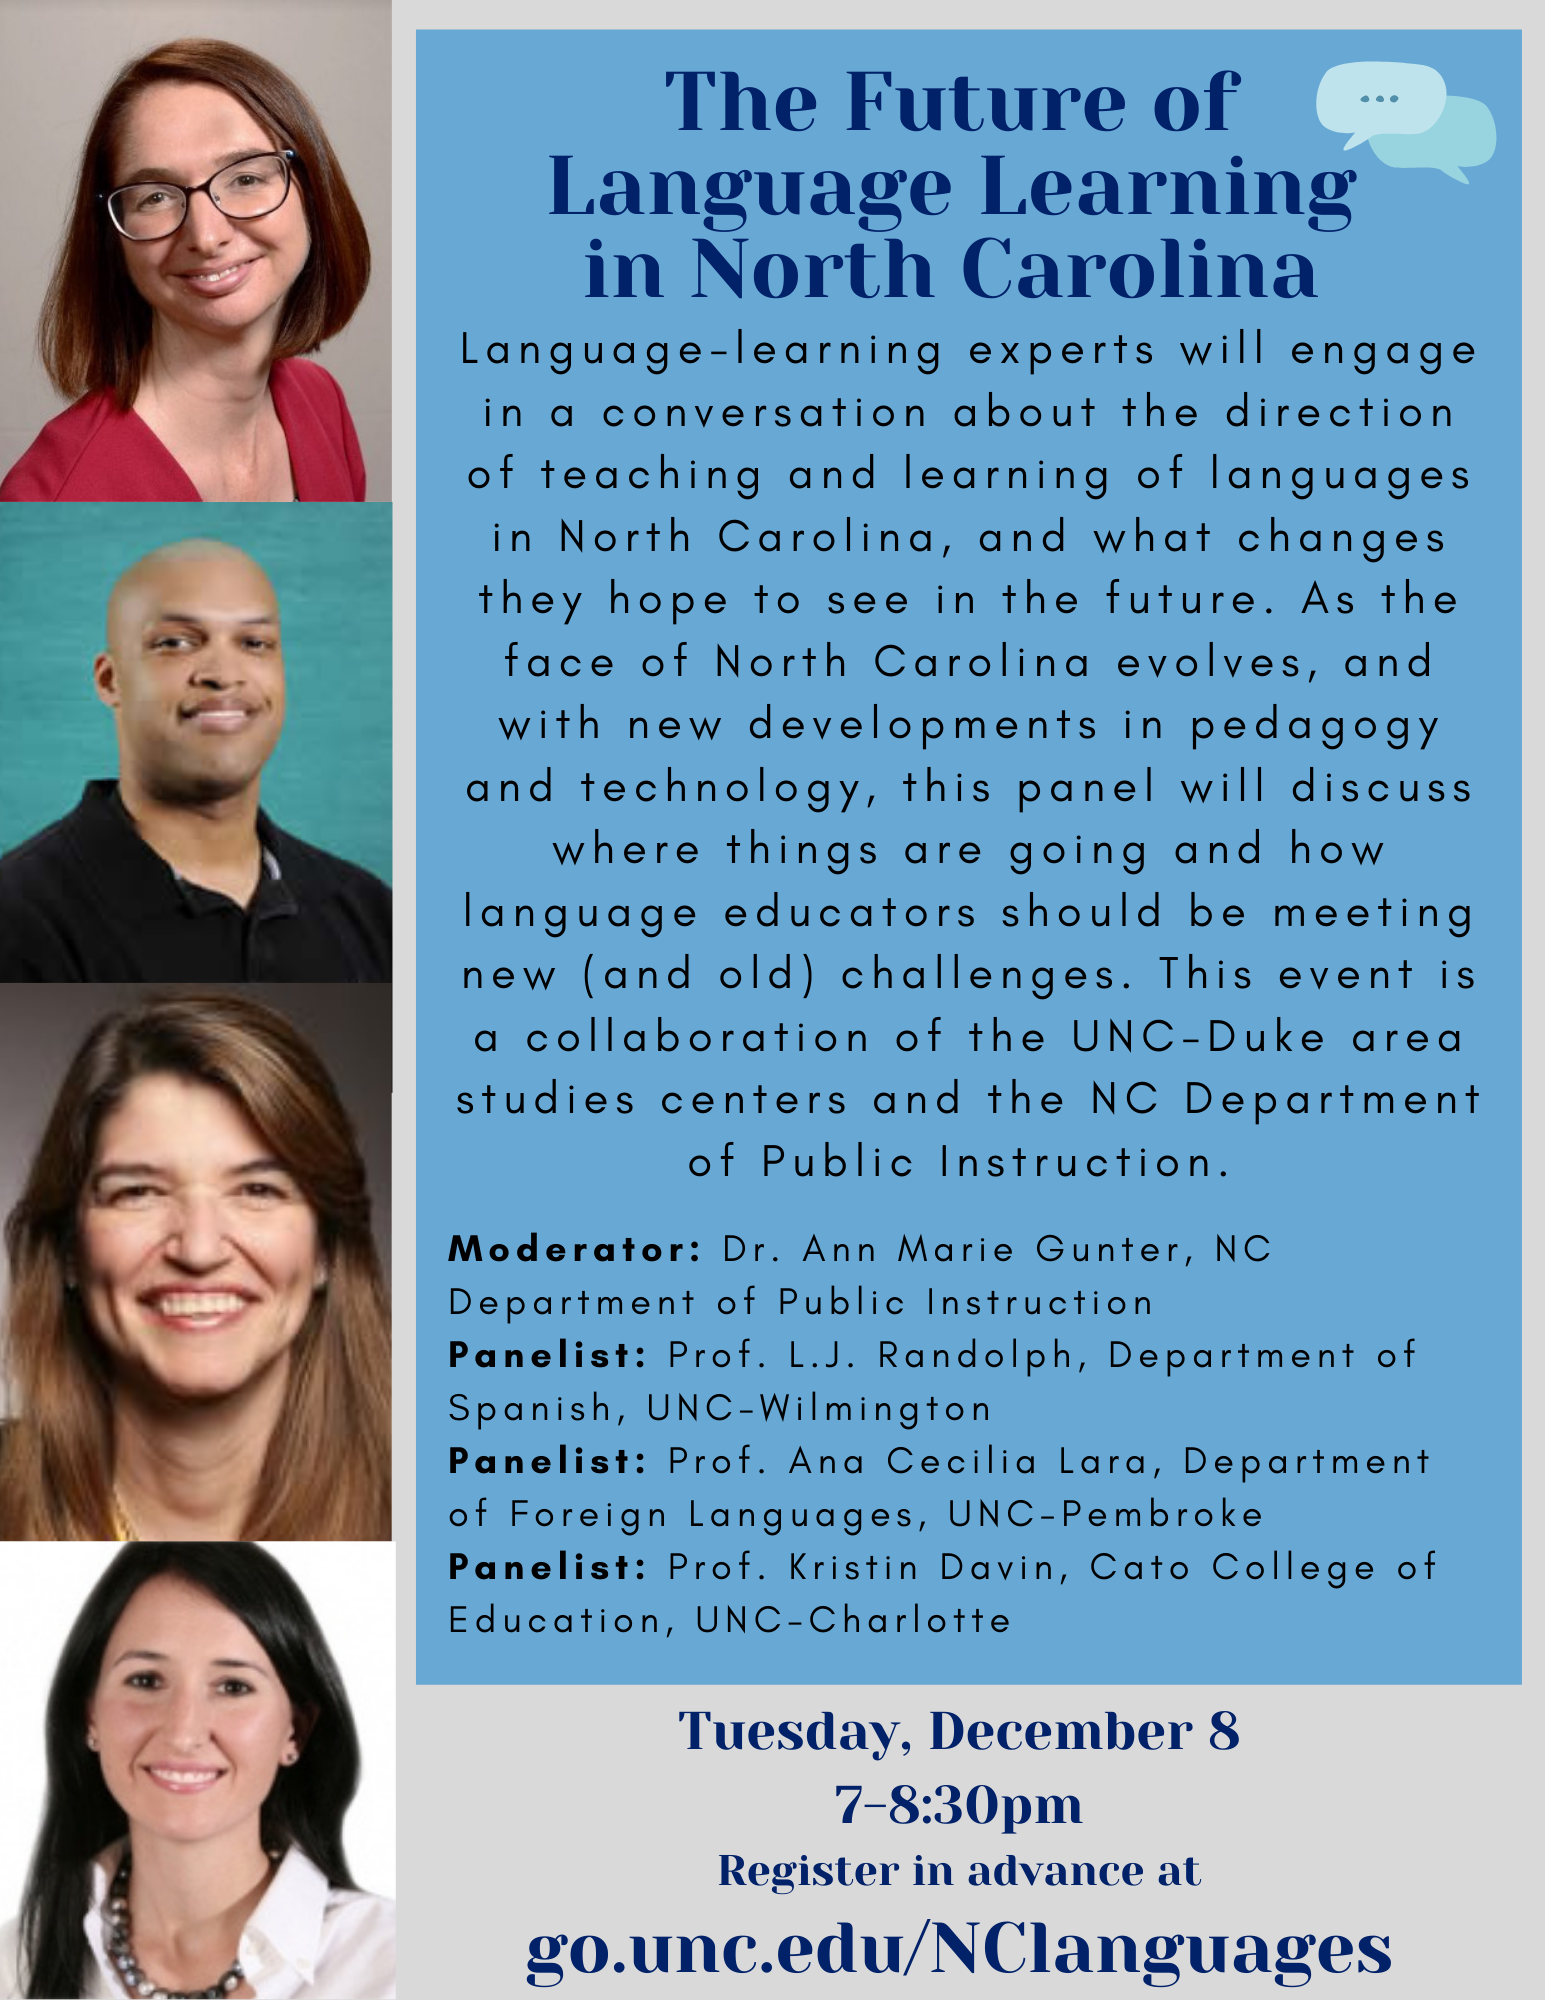 The Future of Language Learning in NC